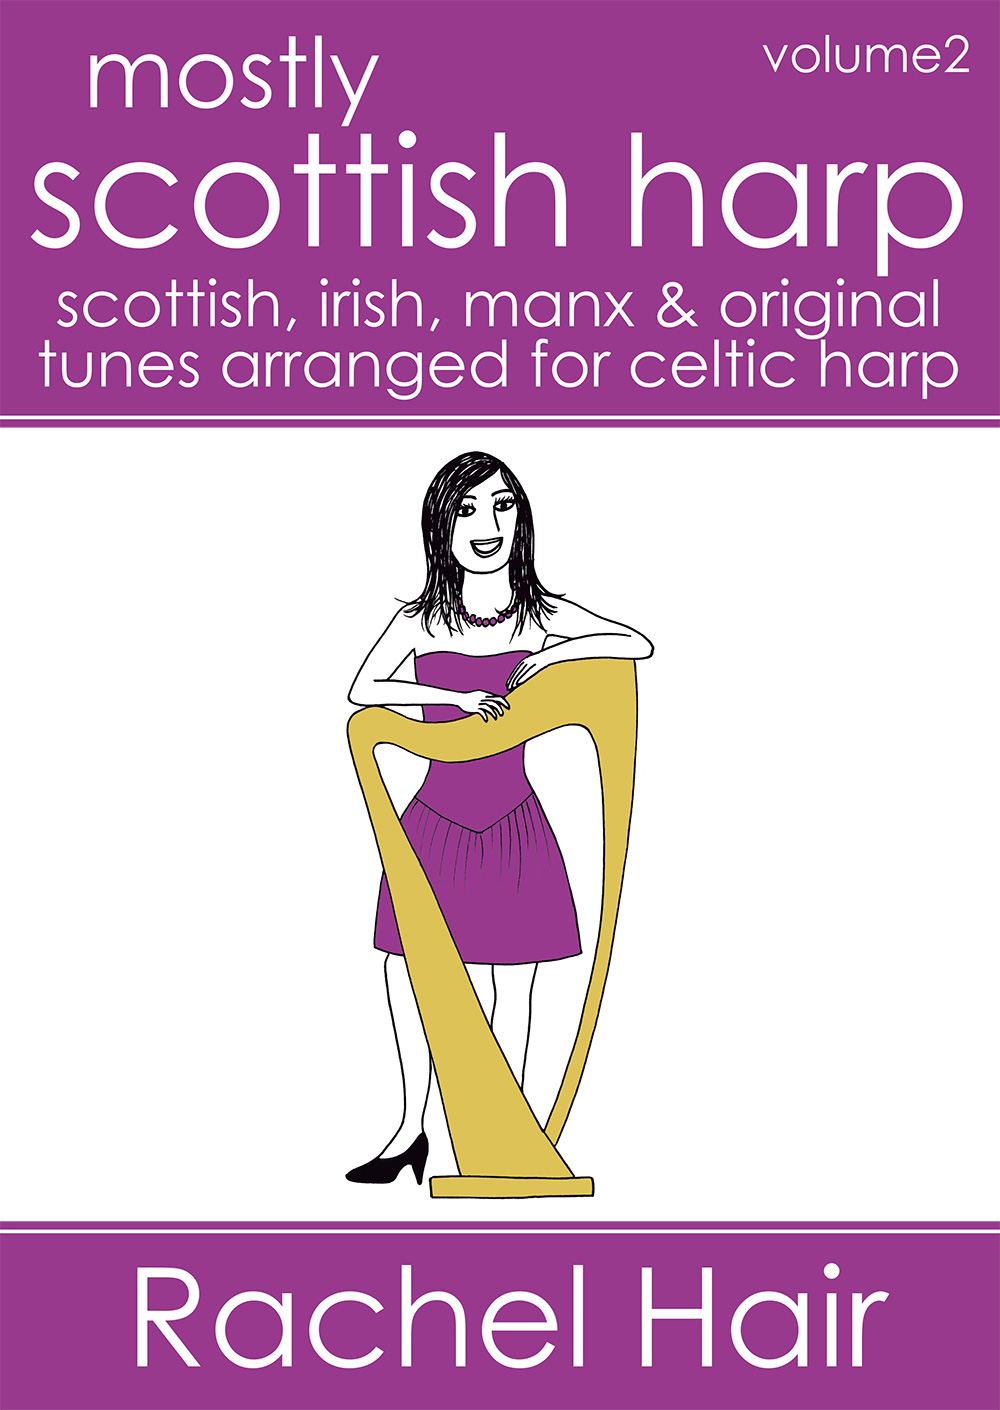 Mostly Scottish Harp Vol2